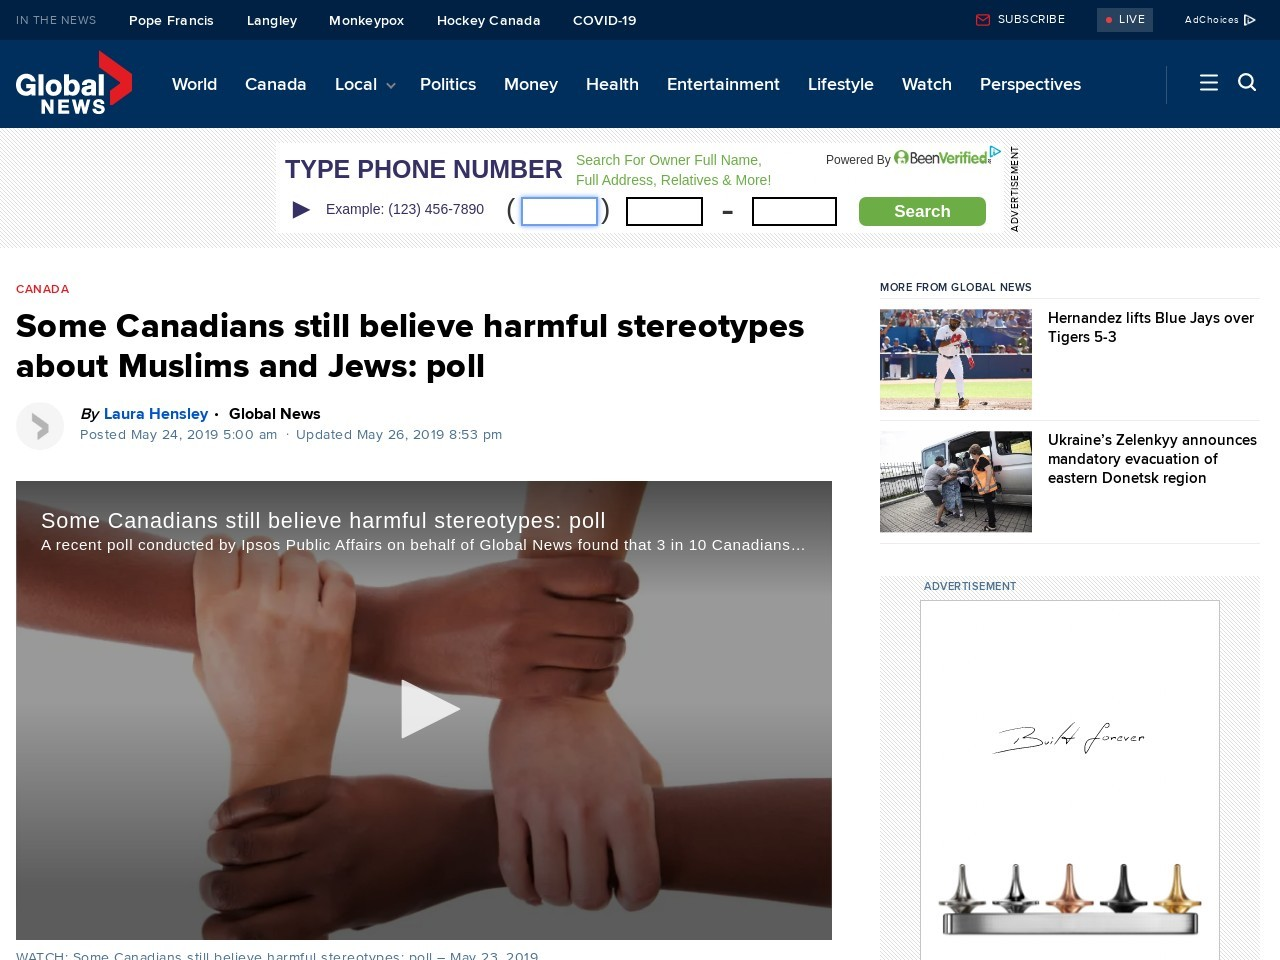 Some Canadians still believe harmful stereotypes about Muslims and Jews: poll